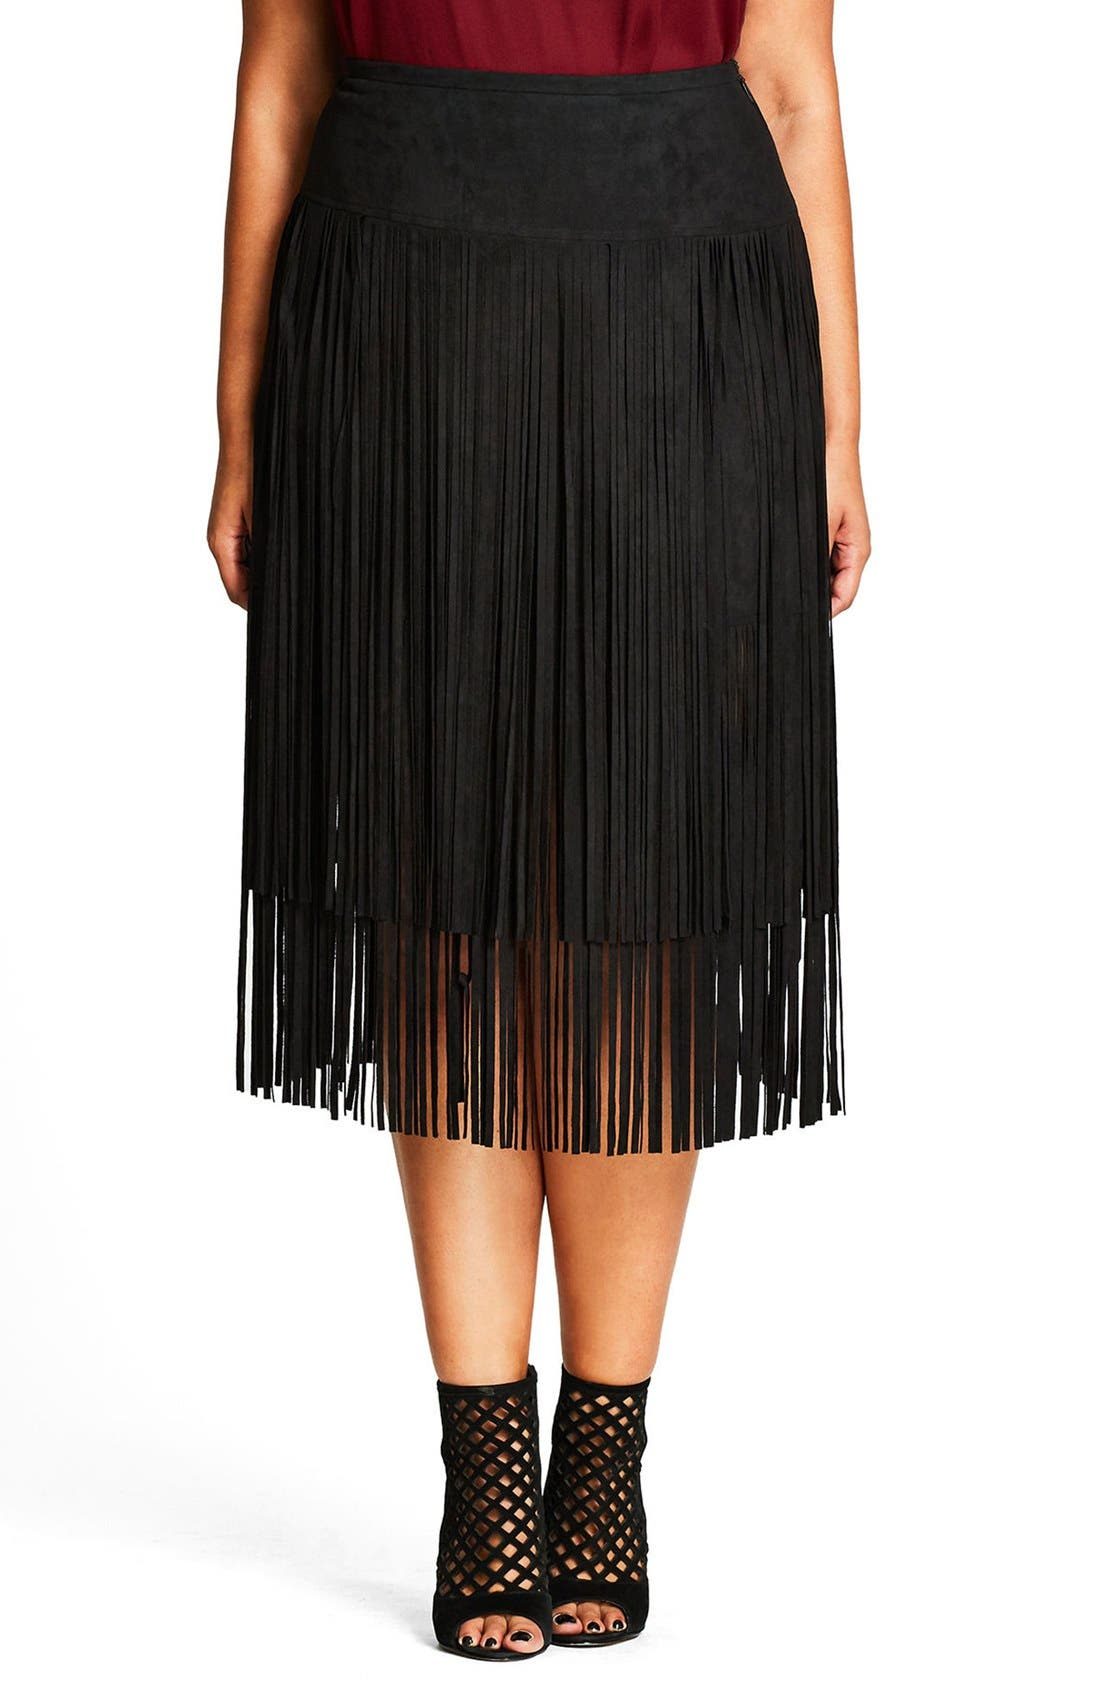 CITY CHIC Woodstock Tiered Fringe Faux Suede Skirt